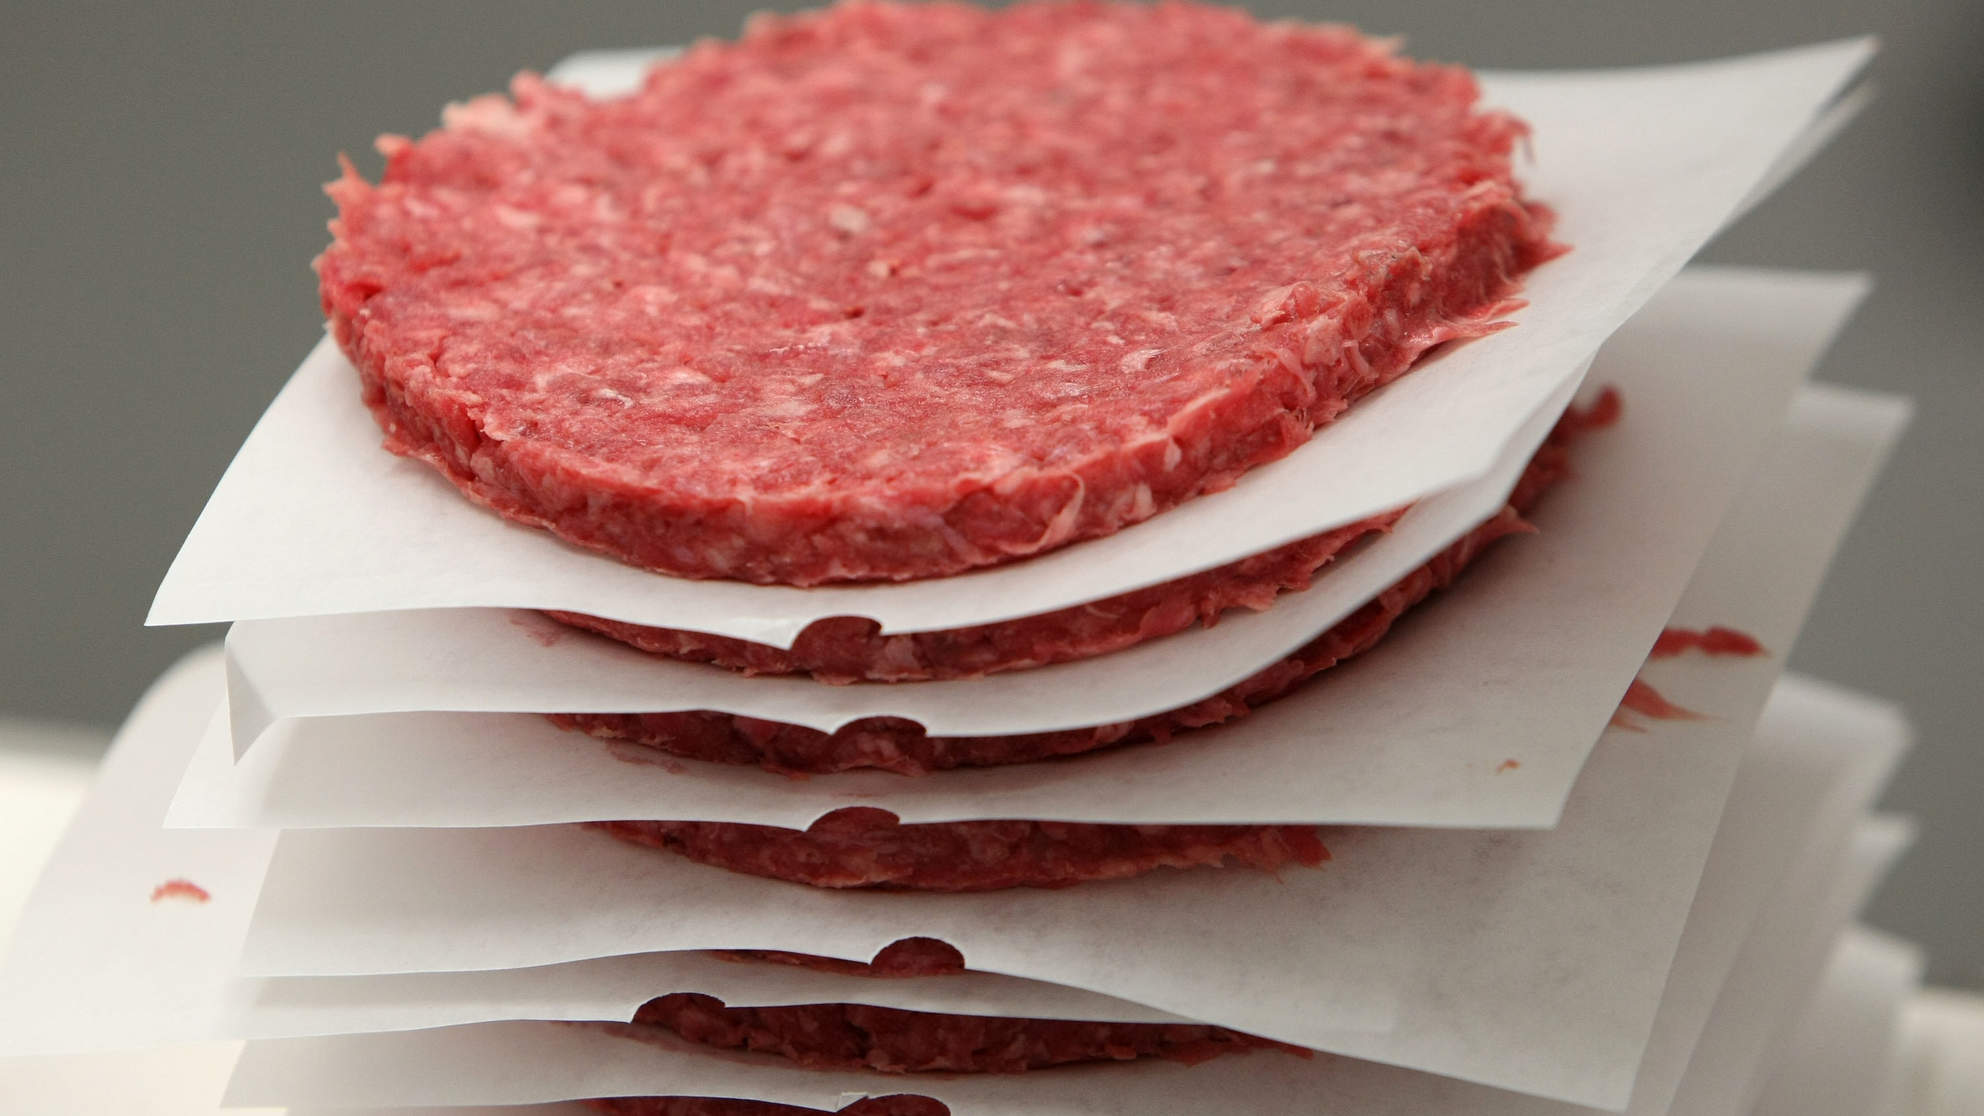 Over 11 Tons of Beef Recalled on E. Coli Fears